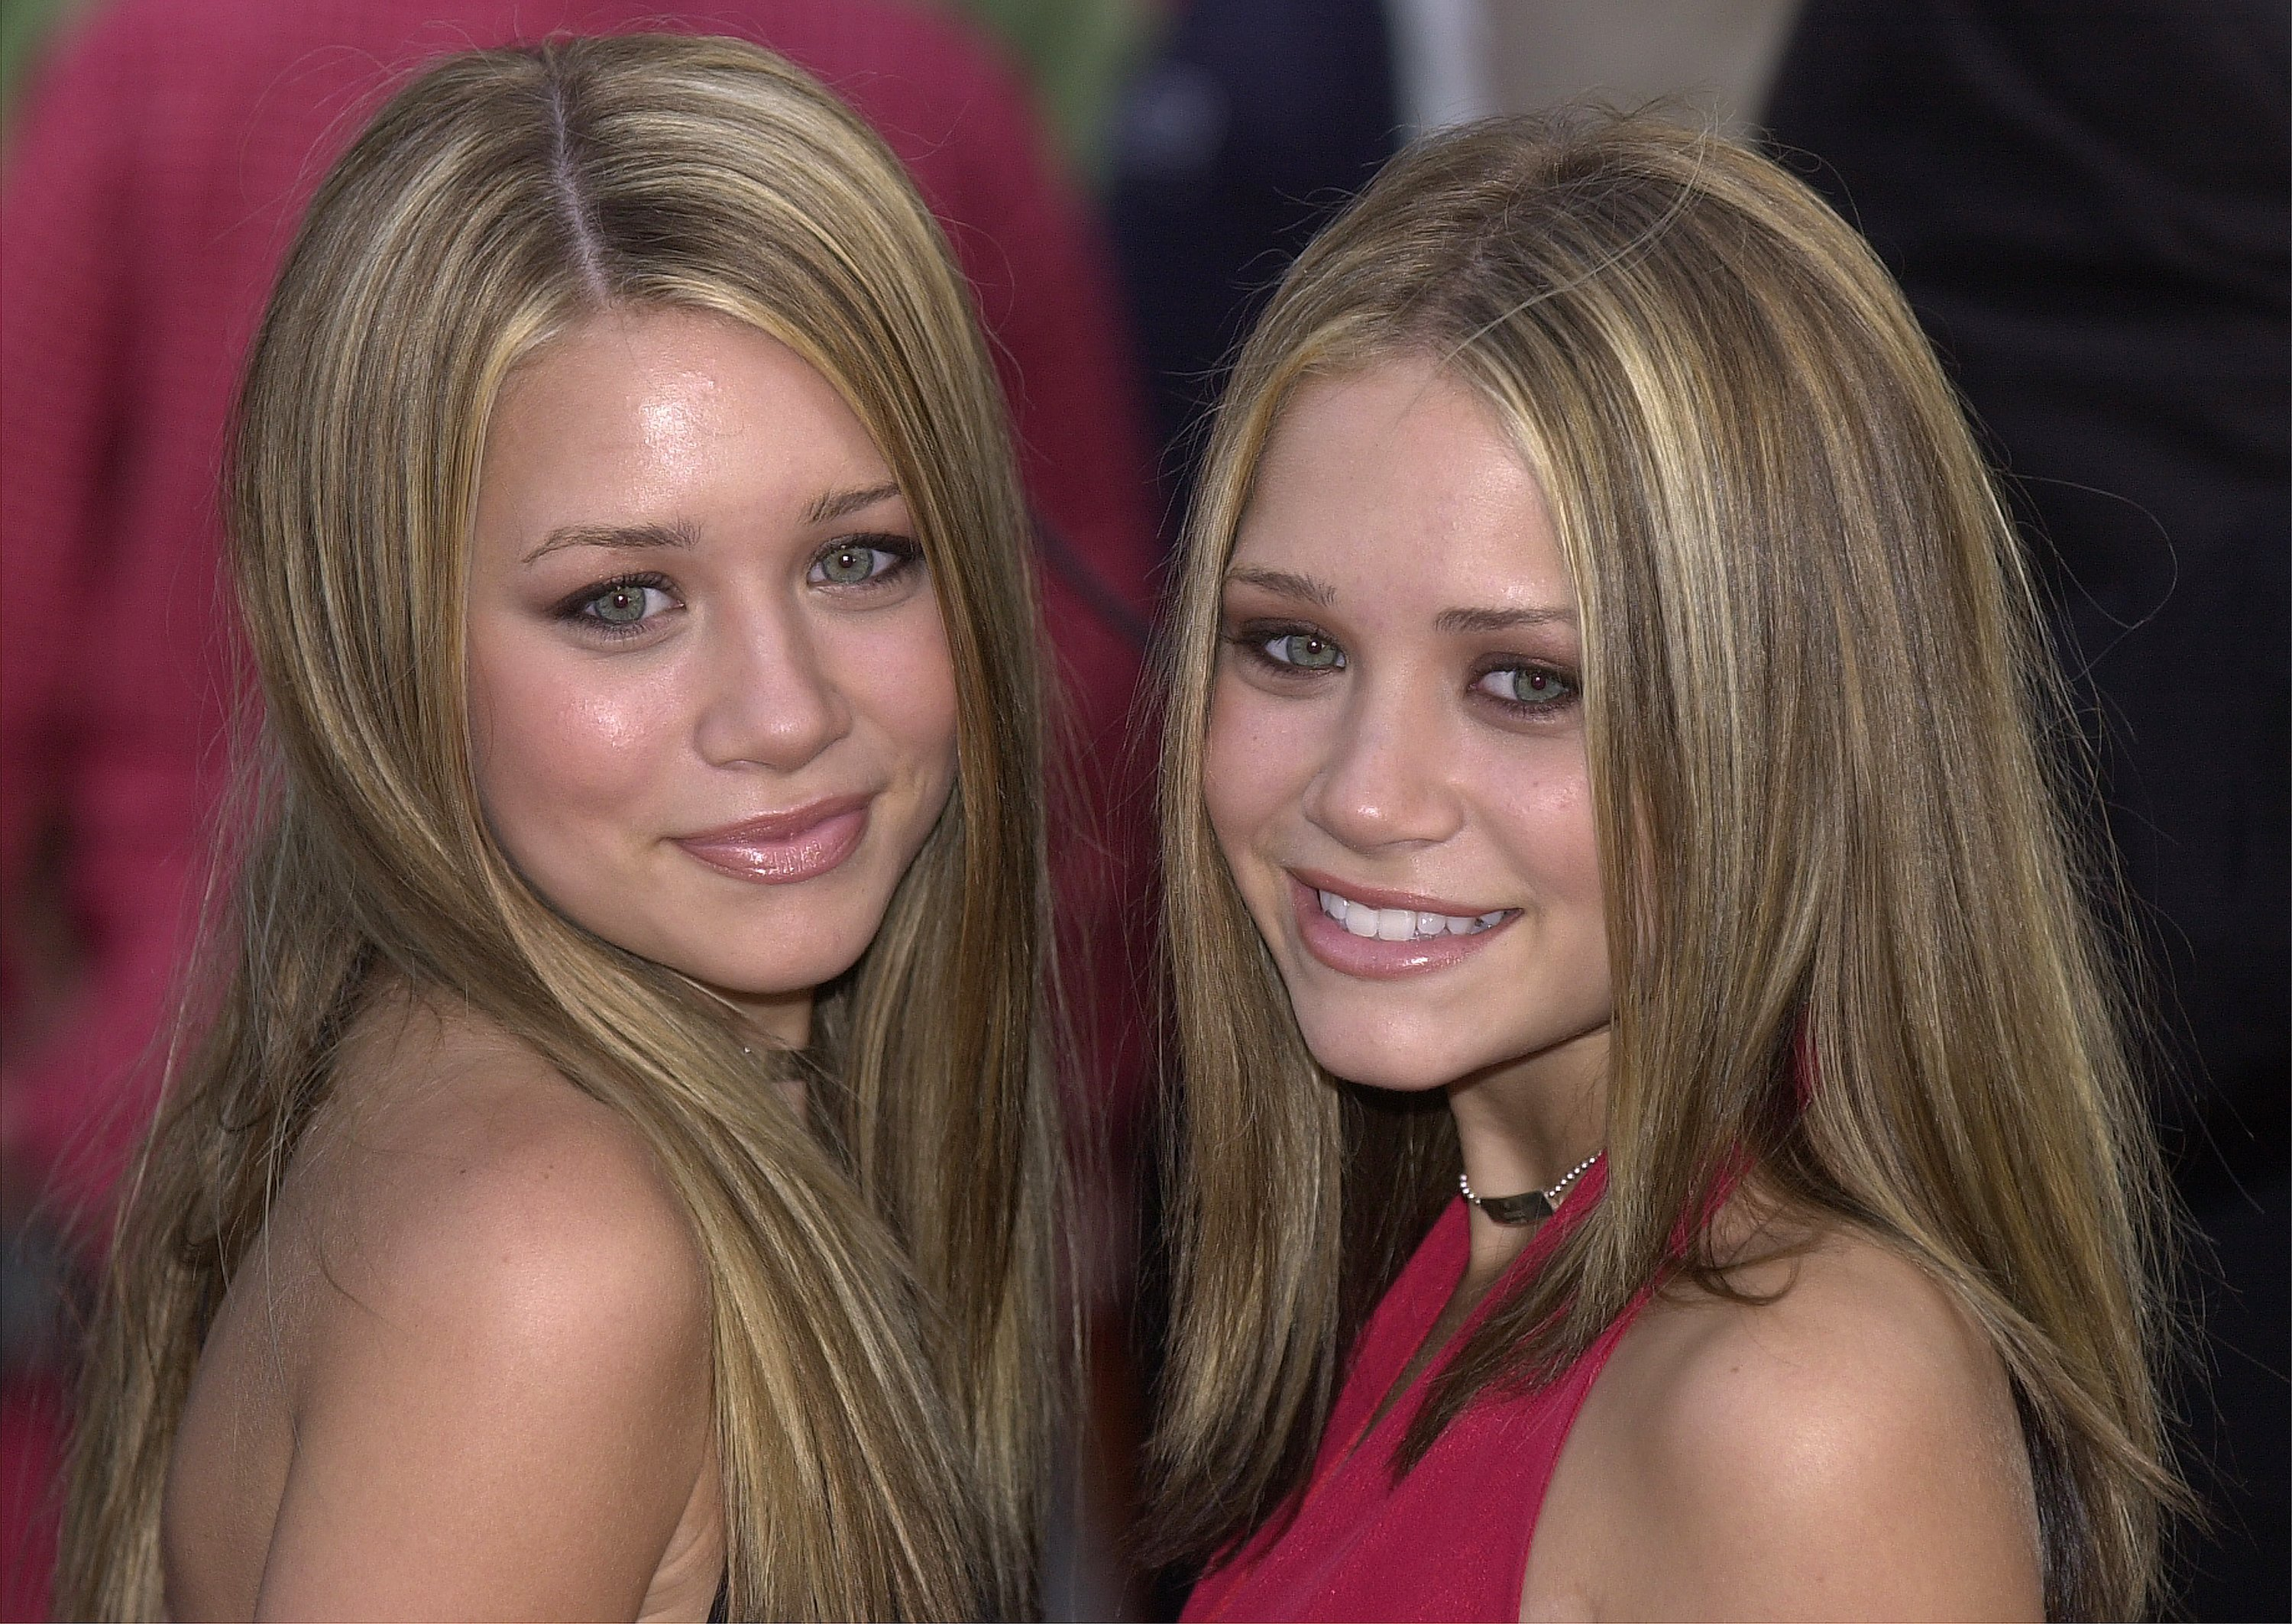 """Ashley (left) and Mary Kate Olson attend the premiere of the New Line Cinema film """"Rush Hour 2"""" July 26, 2001, in Hollywood, CA. 